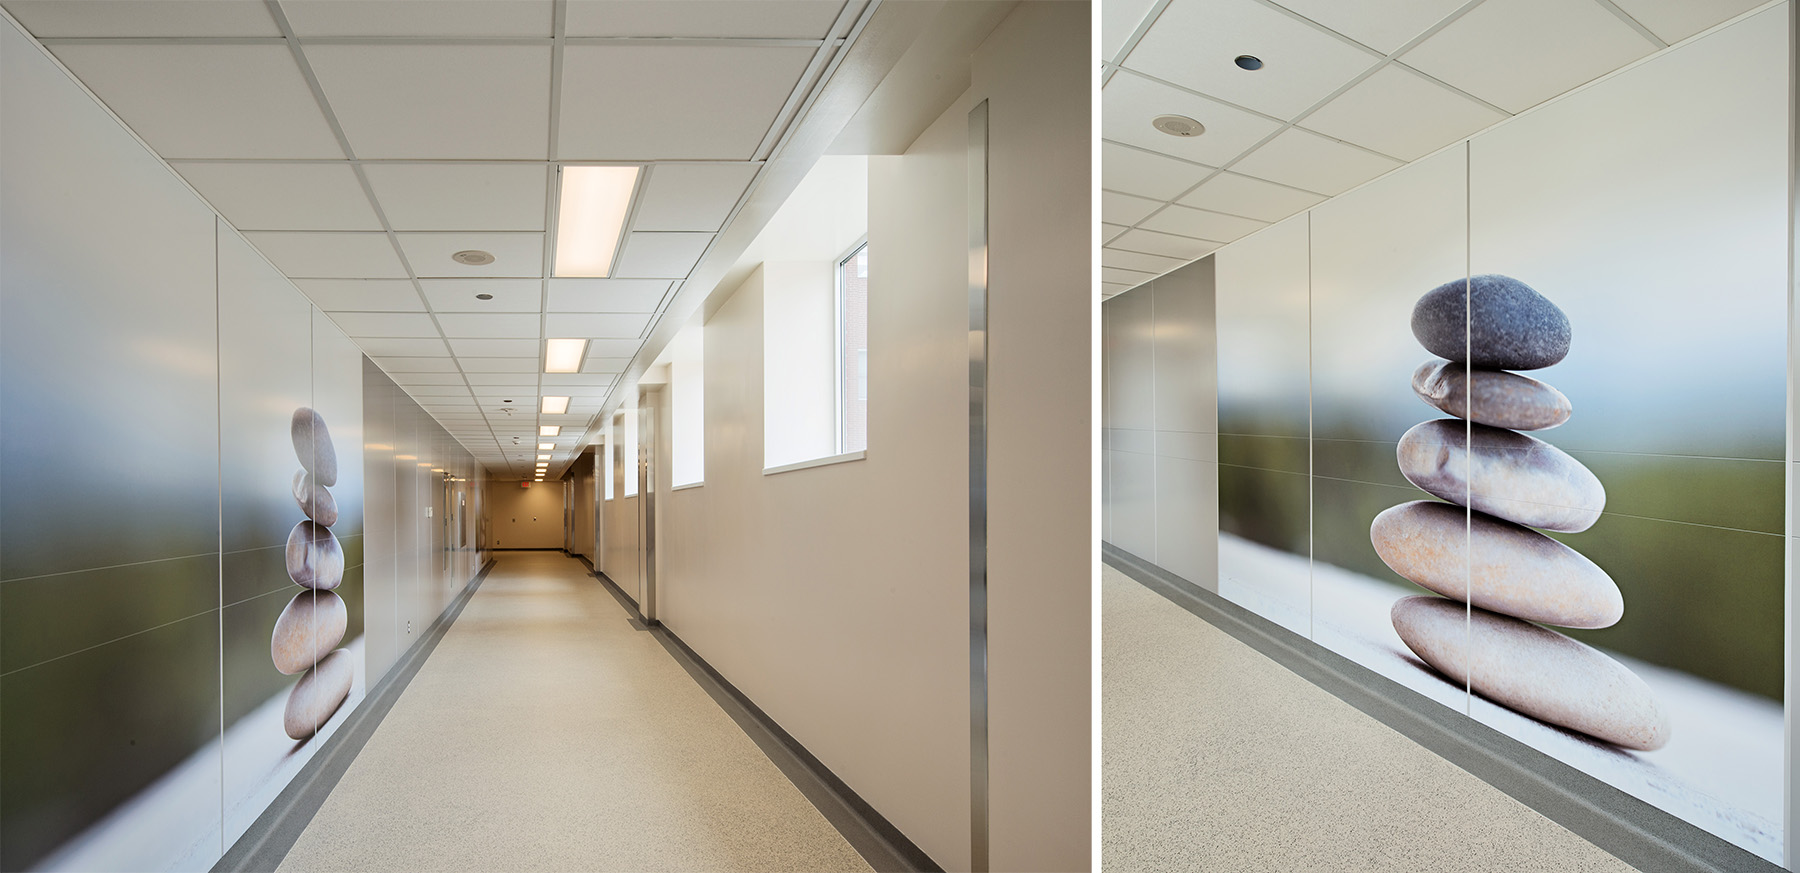 interiors-photography-hospital-ottawa-005